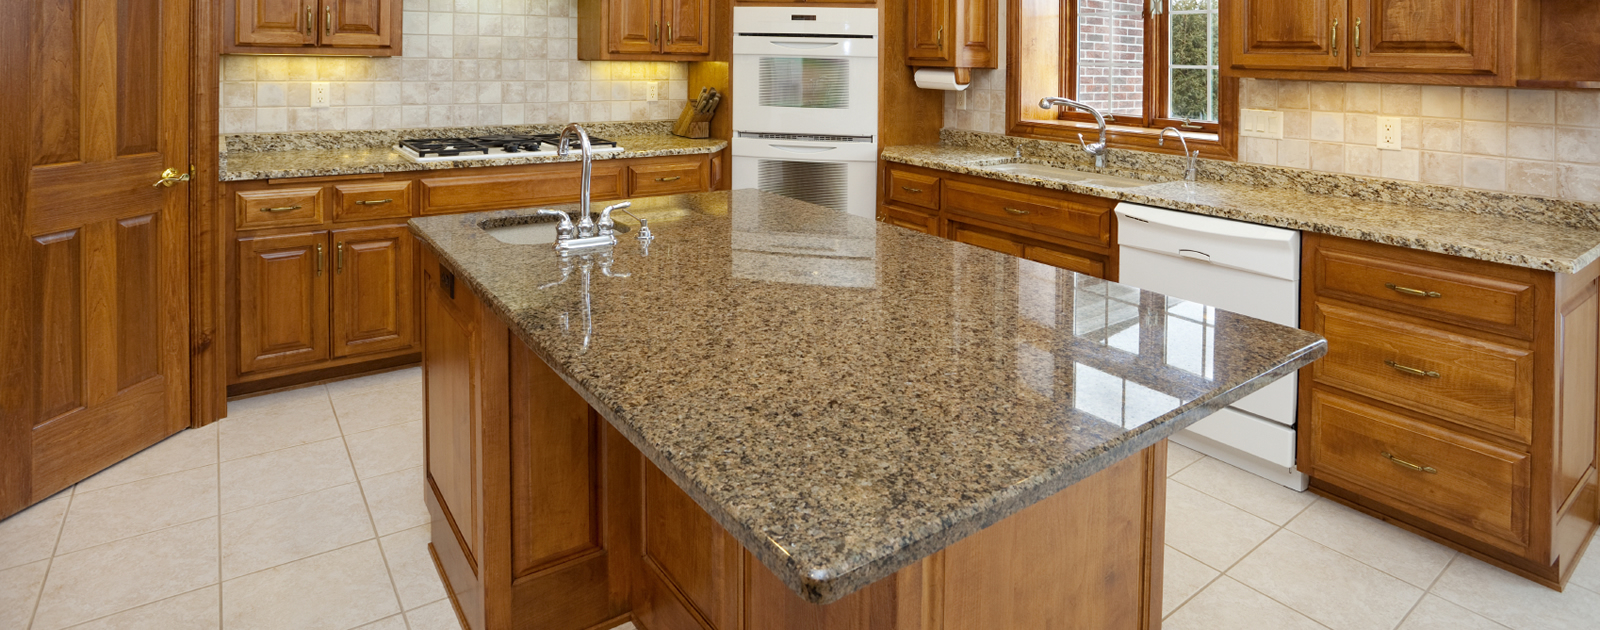 Twin Cities Top Rated Discount Granite Countertop Installation Nature 39 S Stone